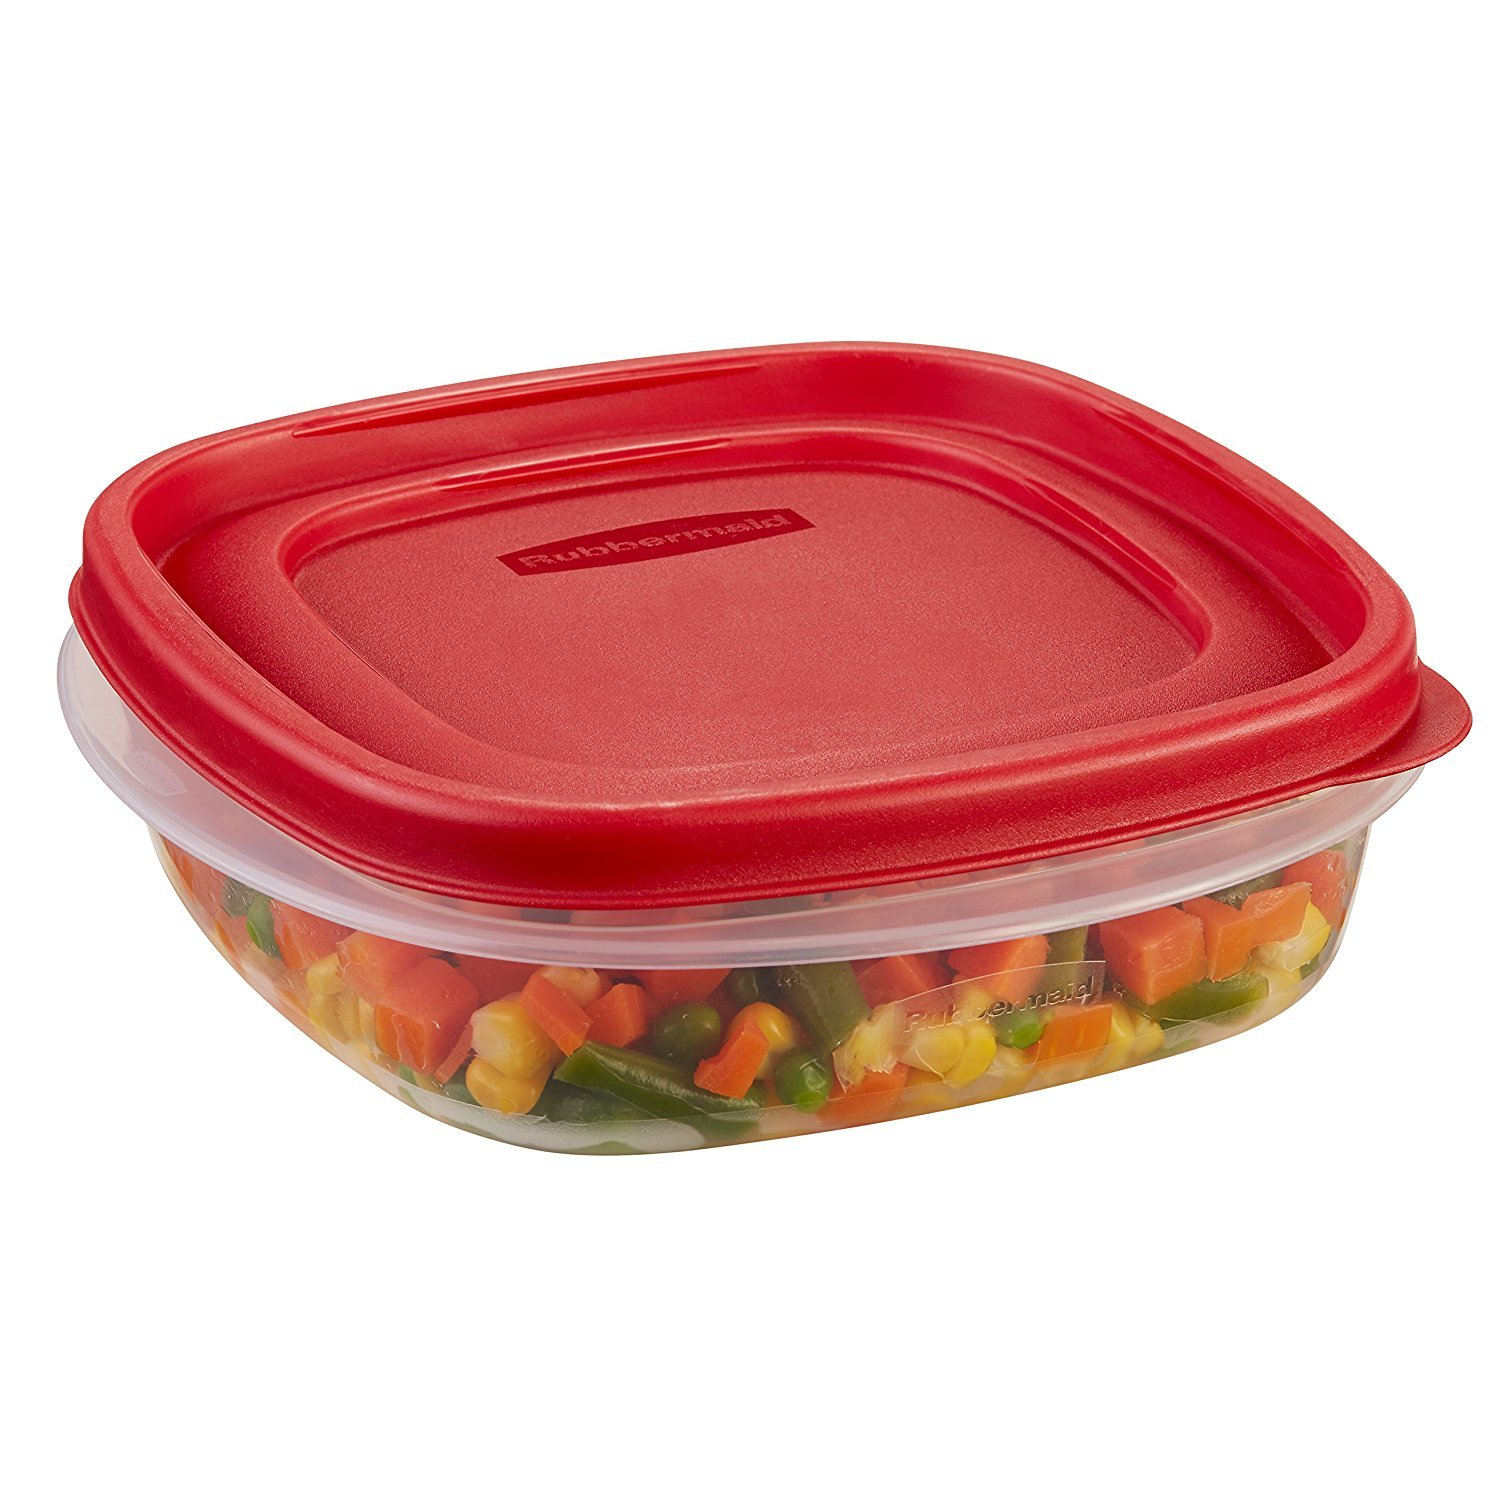 Rubbermaid 711717427300 Easy Find Lids Square 3-Cup Food Storage Container (Pack of 6), 6 Pack, Clear